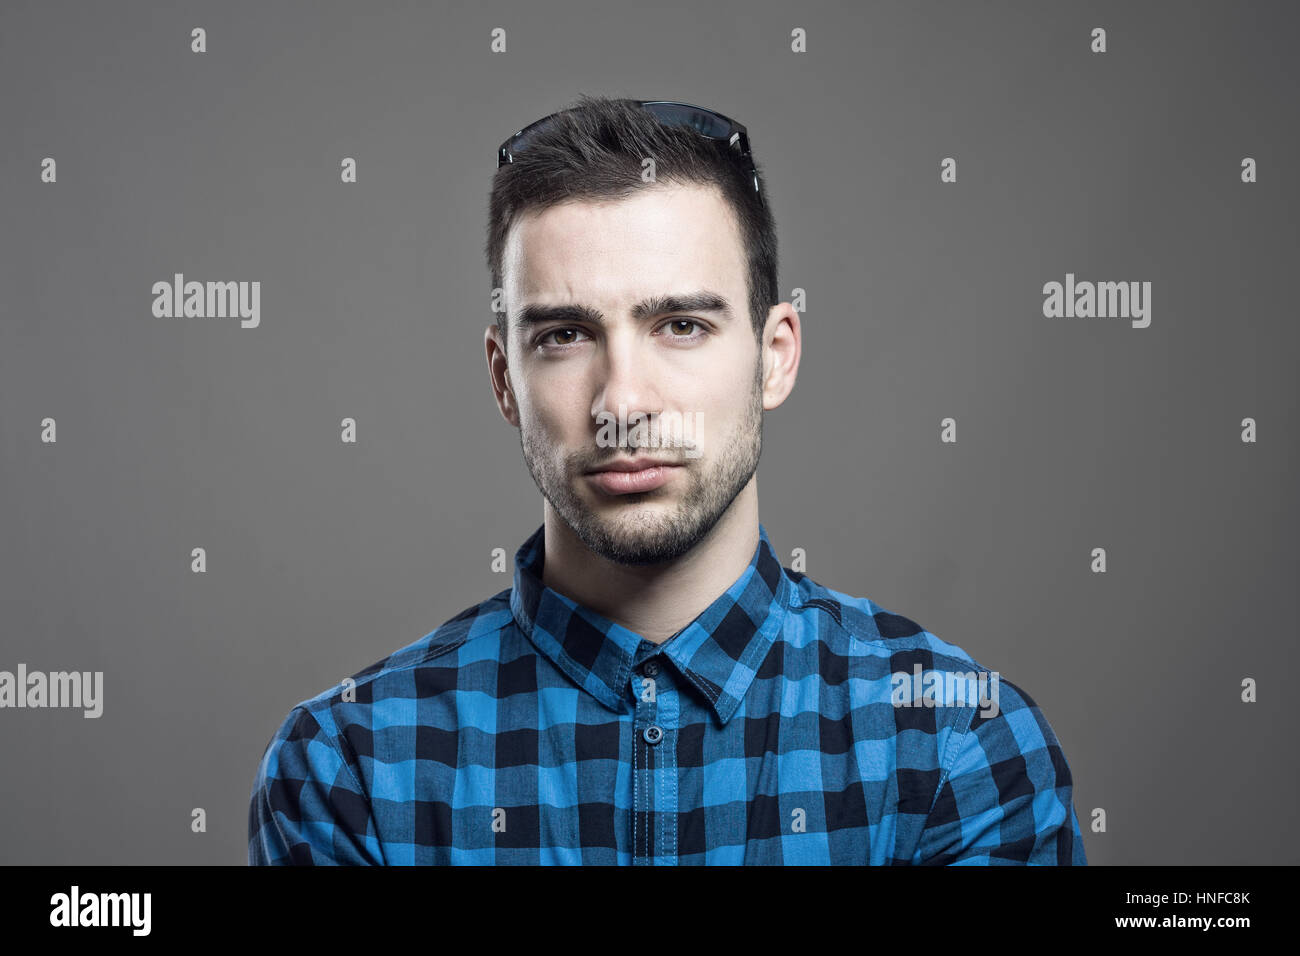 Moody portrait of skeptical young man frowning face looking at camera over gray studio background. - Stock Image